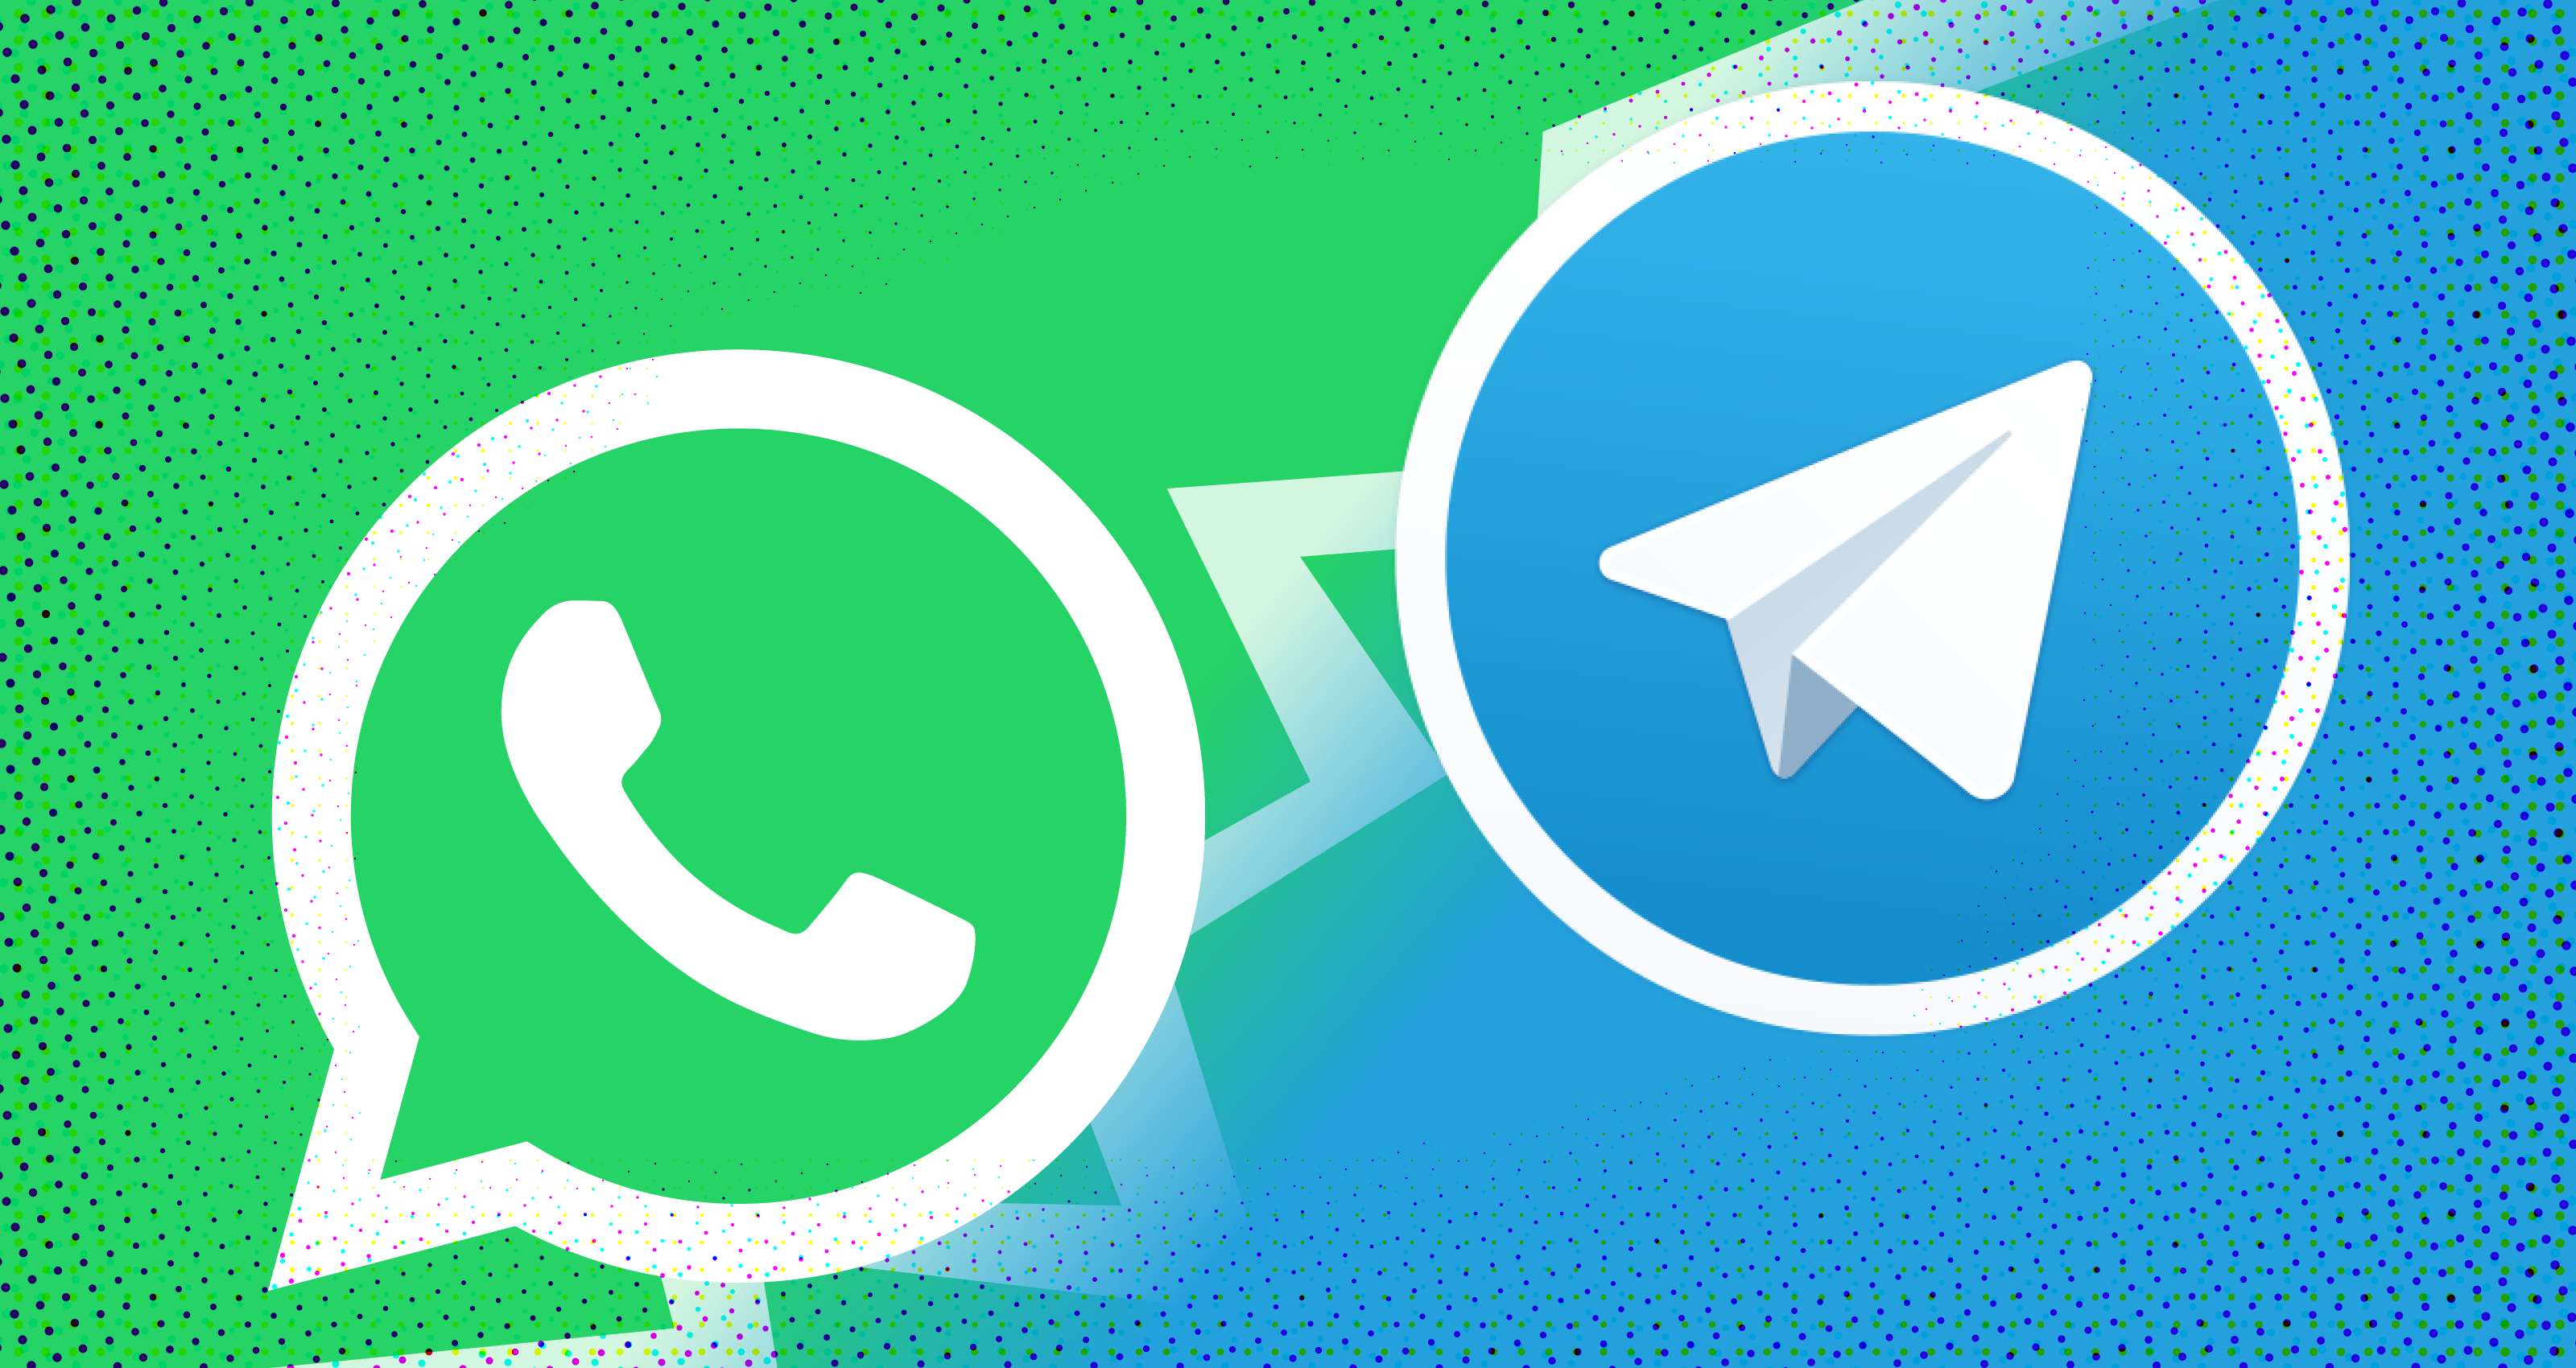 WhatsApp announce a number of new Group-related features